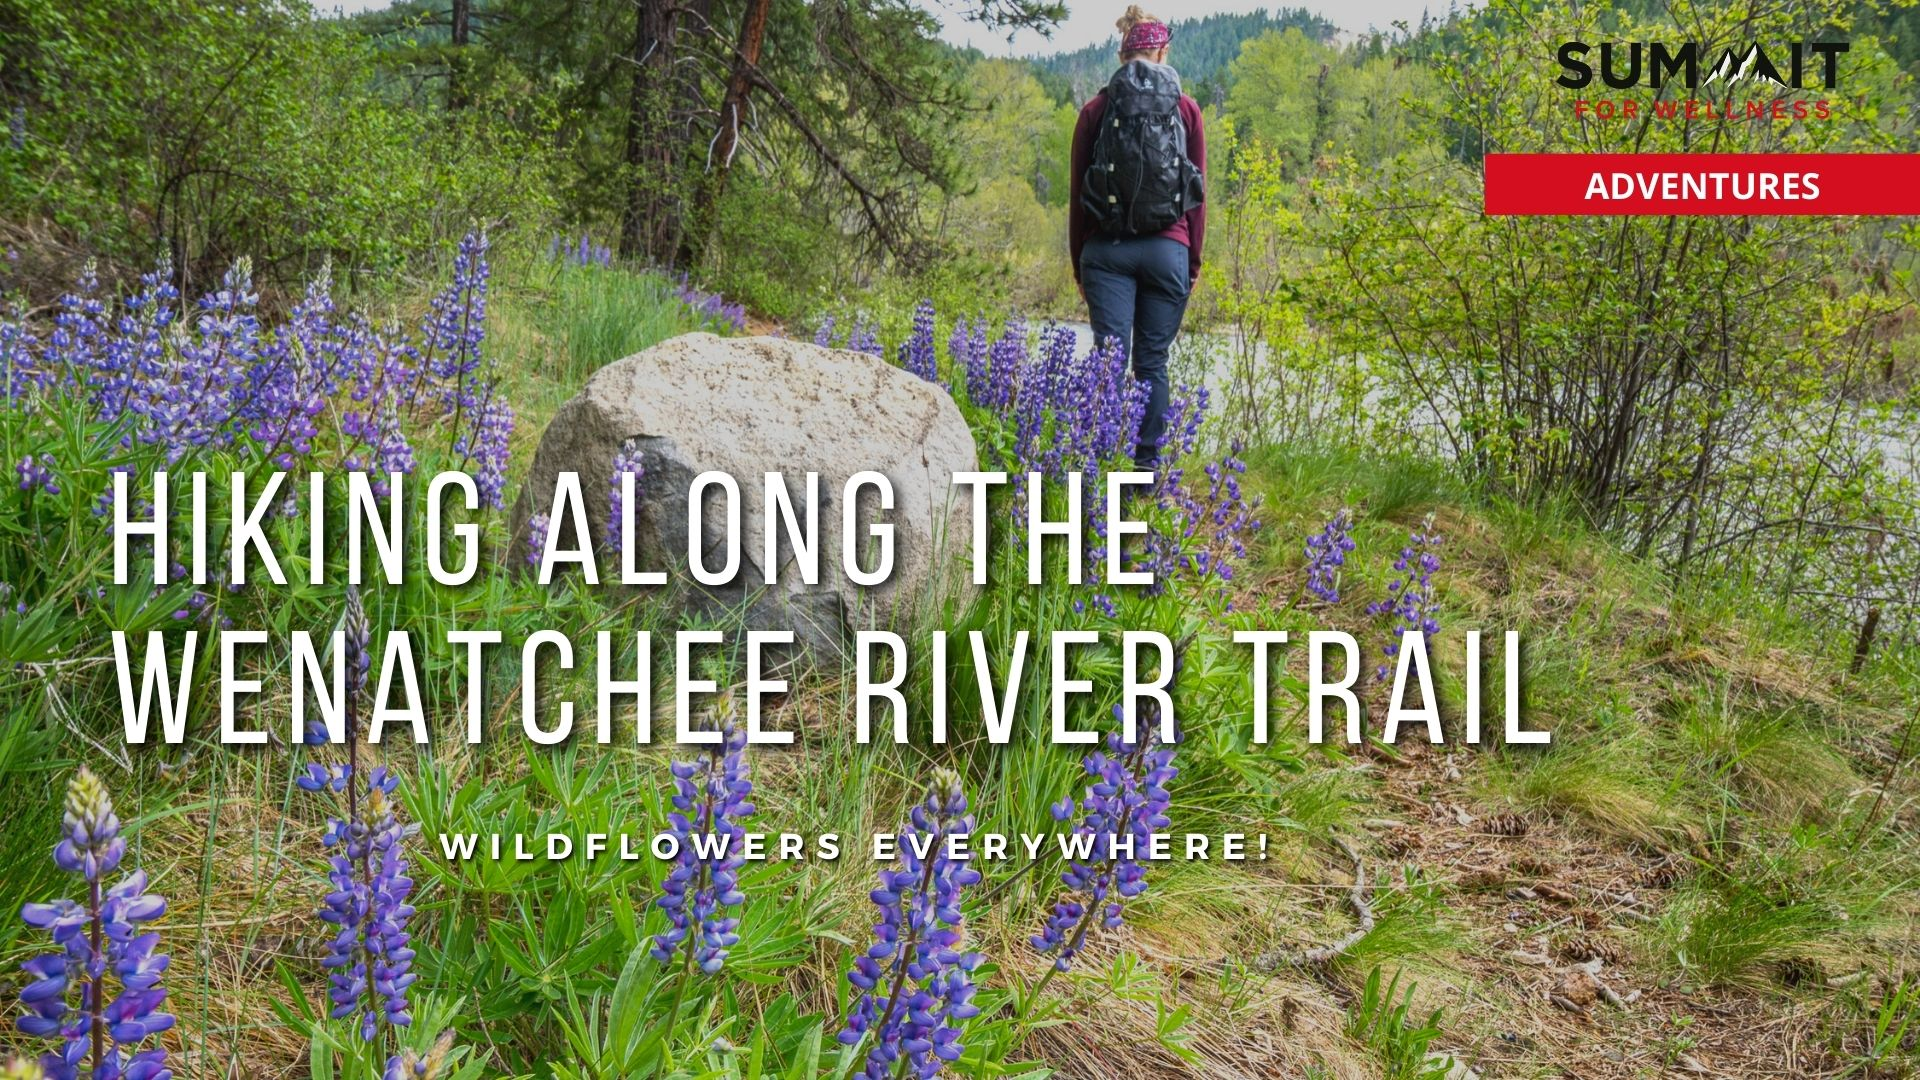 Hike along the Wenatchee River Trail to see beautiful wildflowers